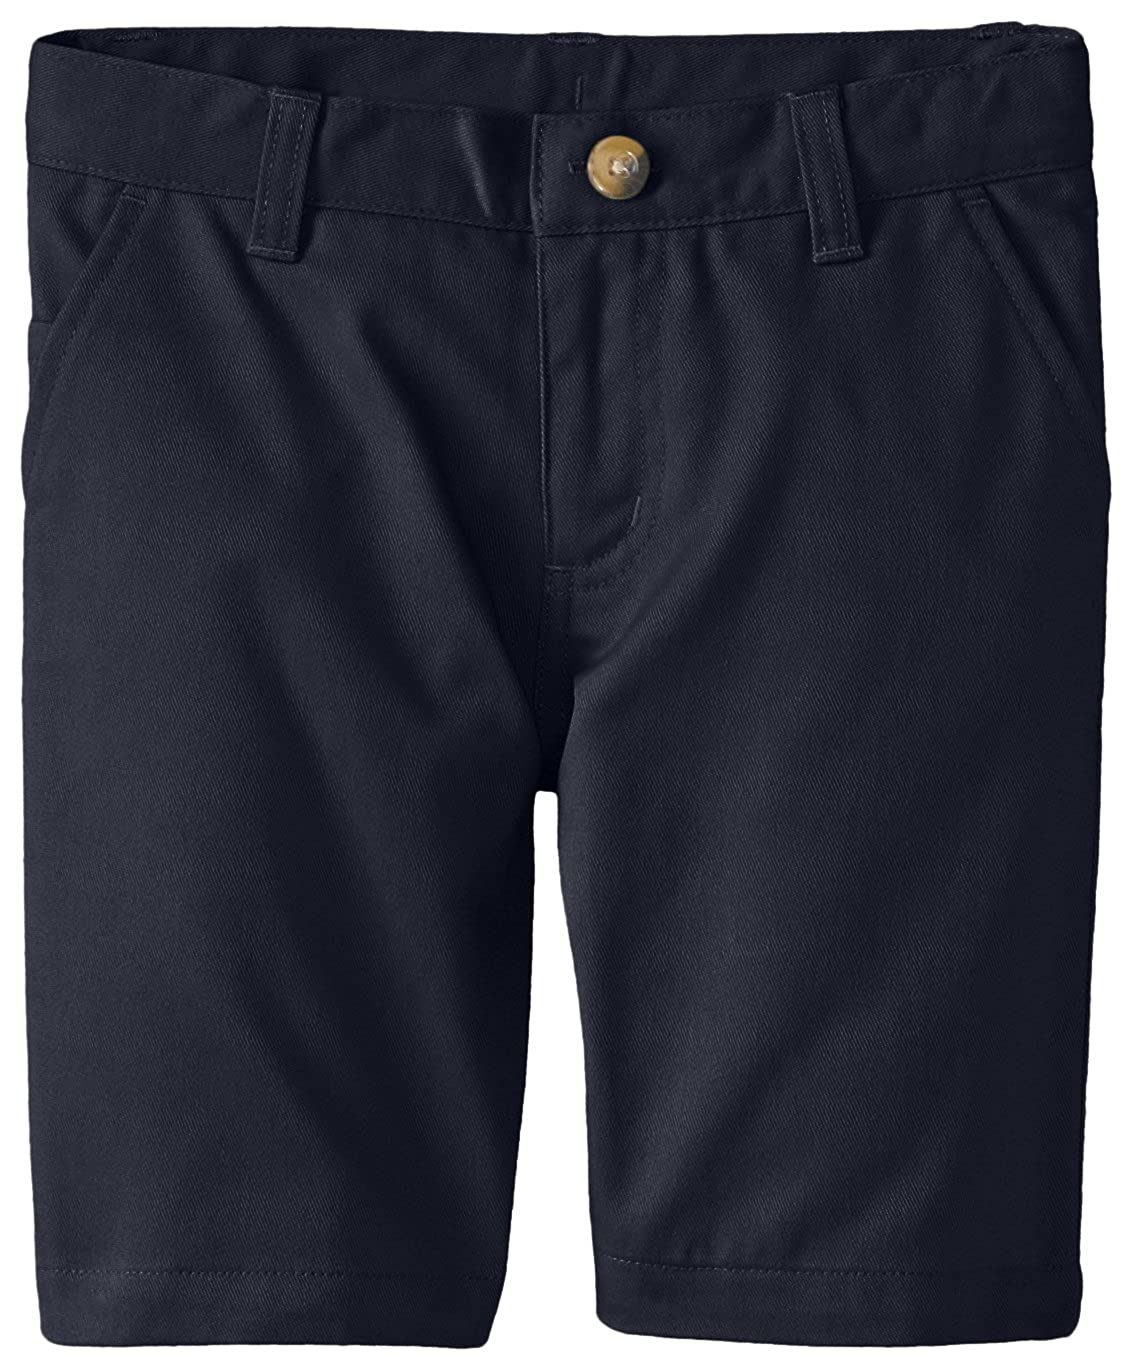 Lee Boys' Classic Flat Front Twill Short H9232L